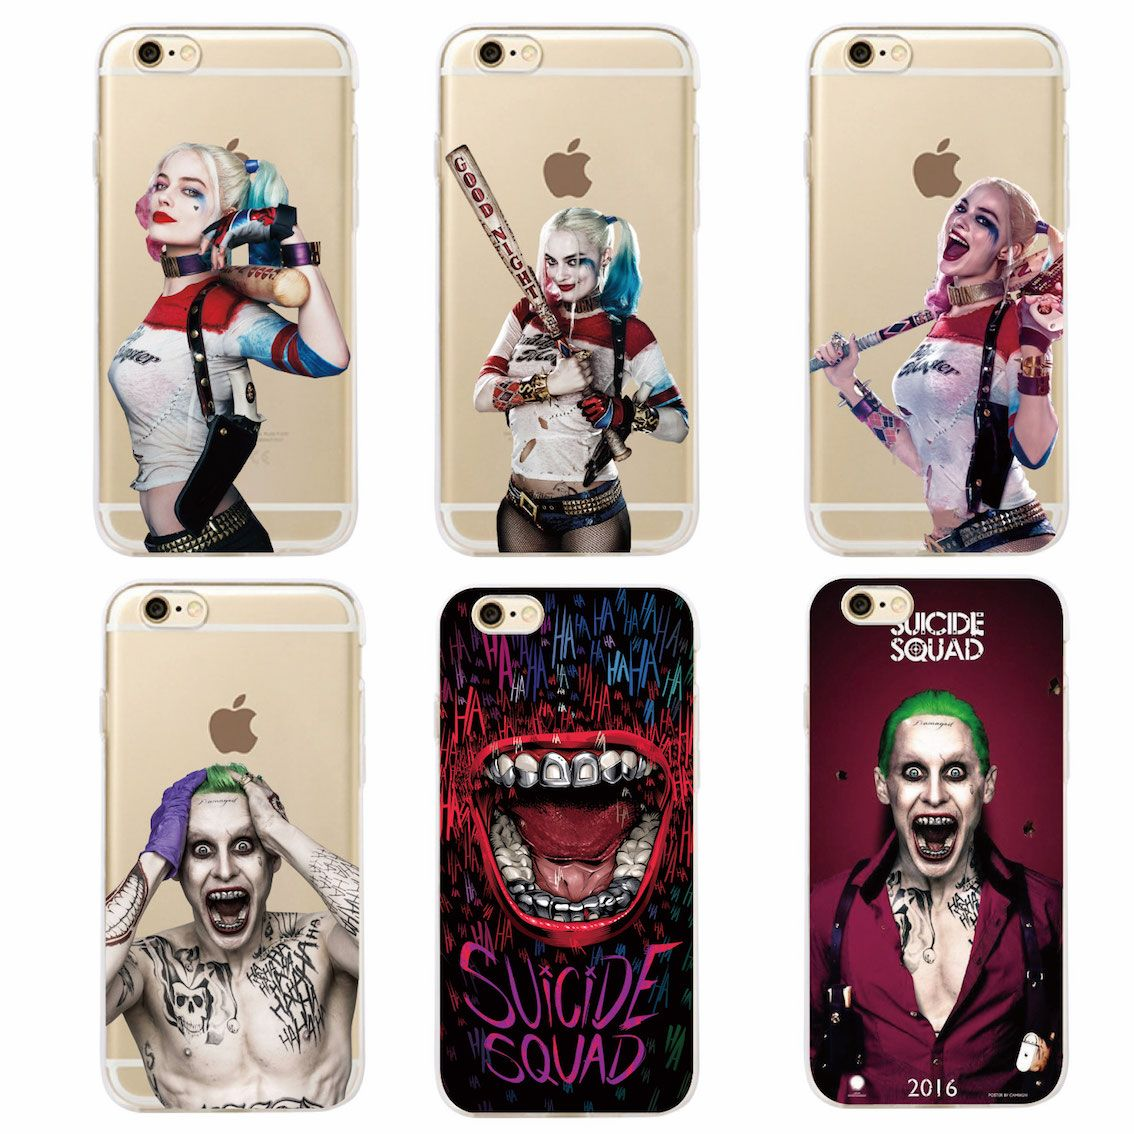 Suicide Squad Harley Quinn Jared Leto Joker Comics Movie Soft Phone Case  Coque Fundas For iPhone 7 7Plus 6 6S 6Plus 5 5S SAMSUNG 8e29d27984f9